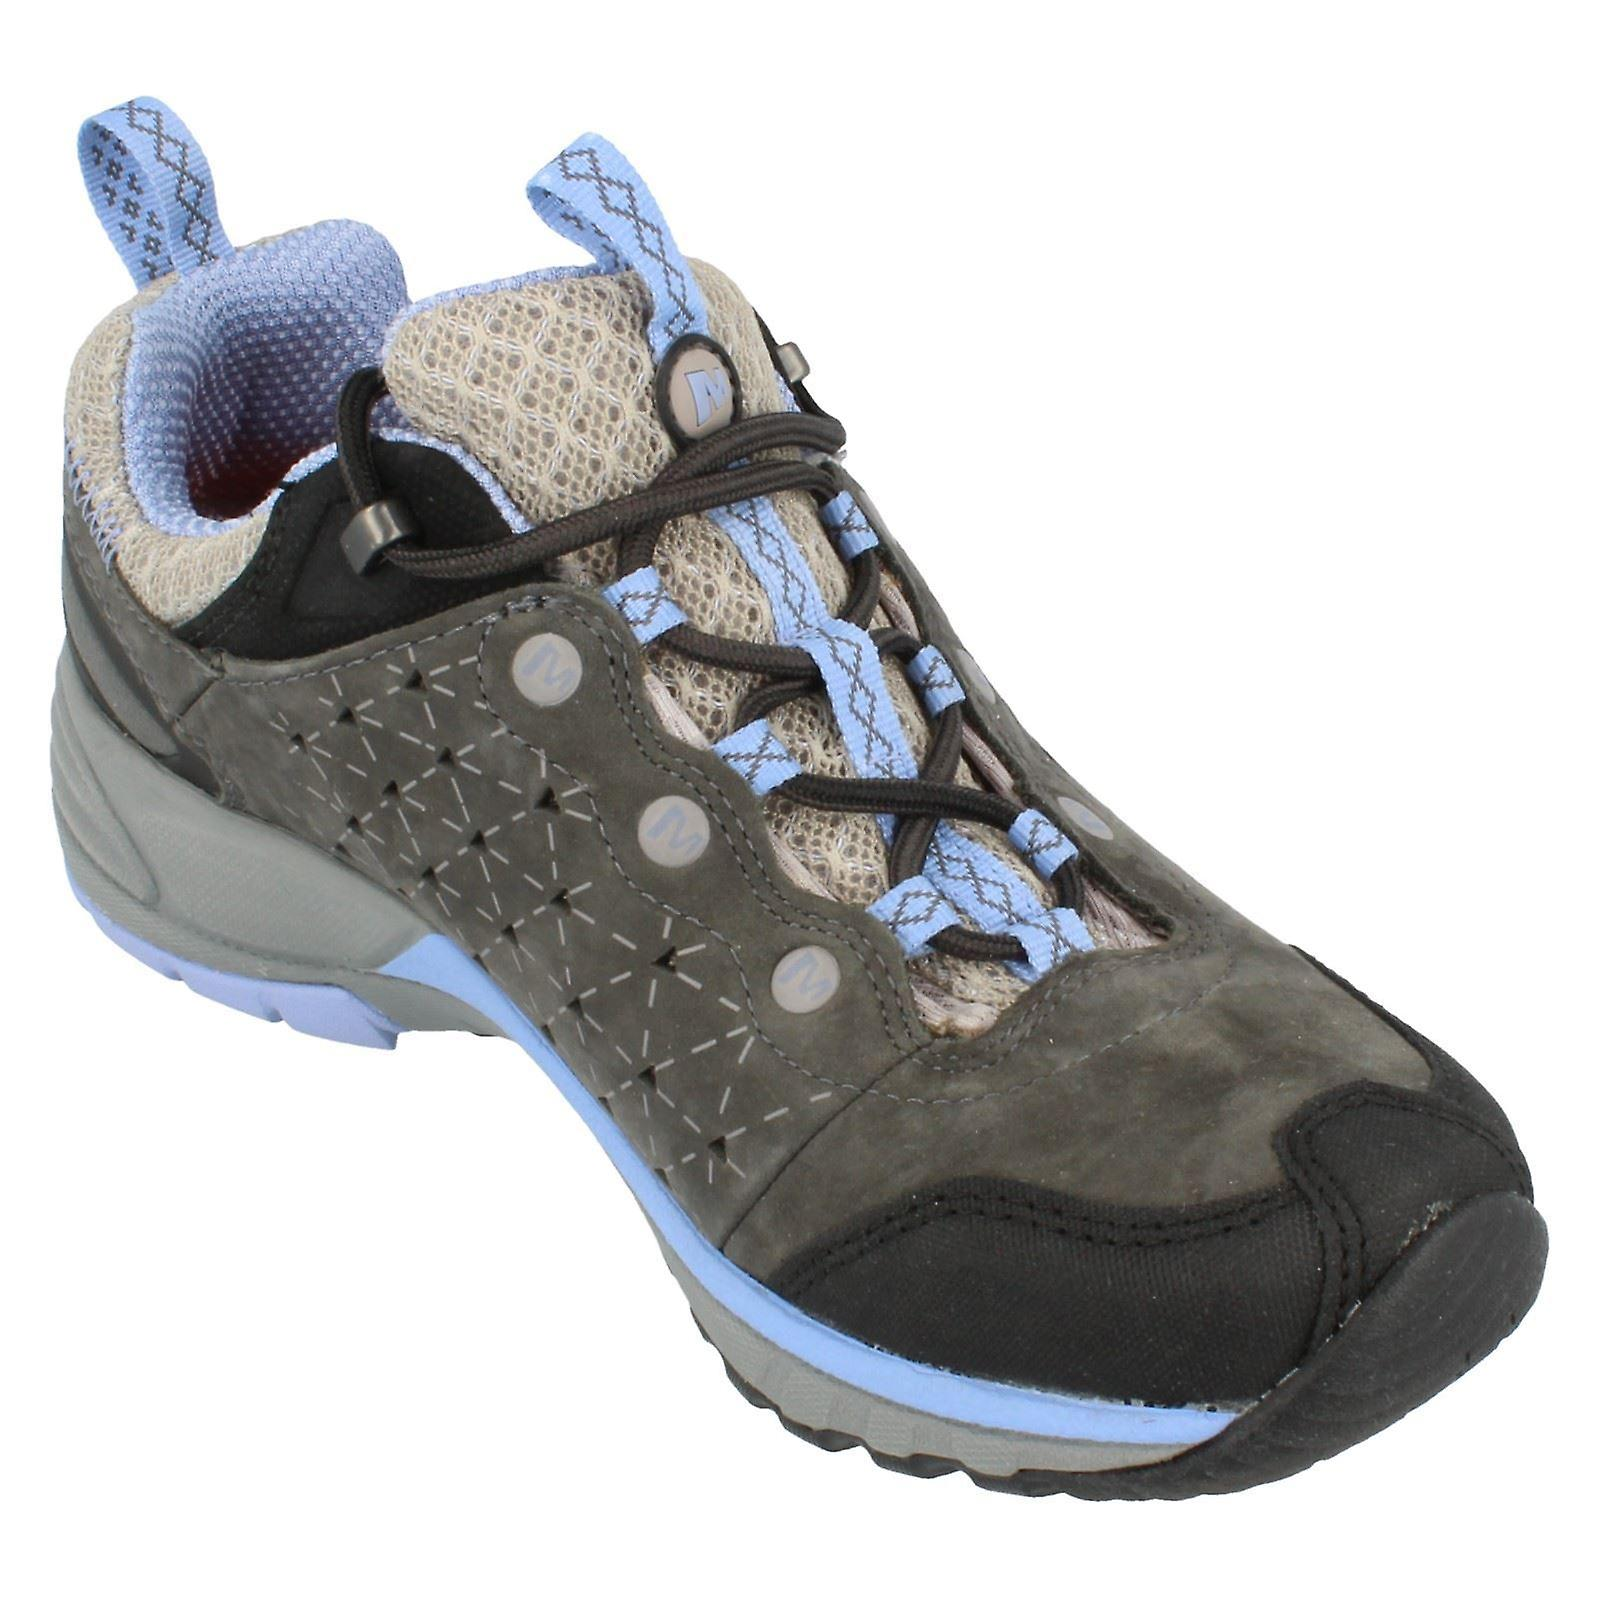 Dames Merrell Lace Up Trainer J16700/aviaire licht PDgzUe